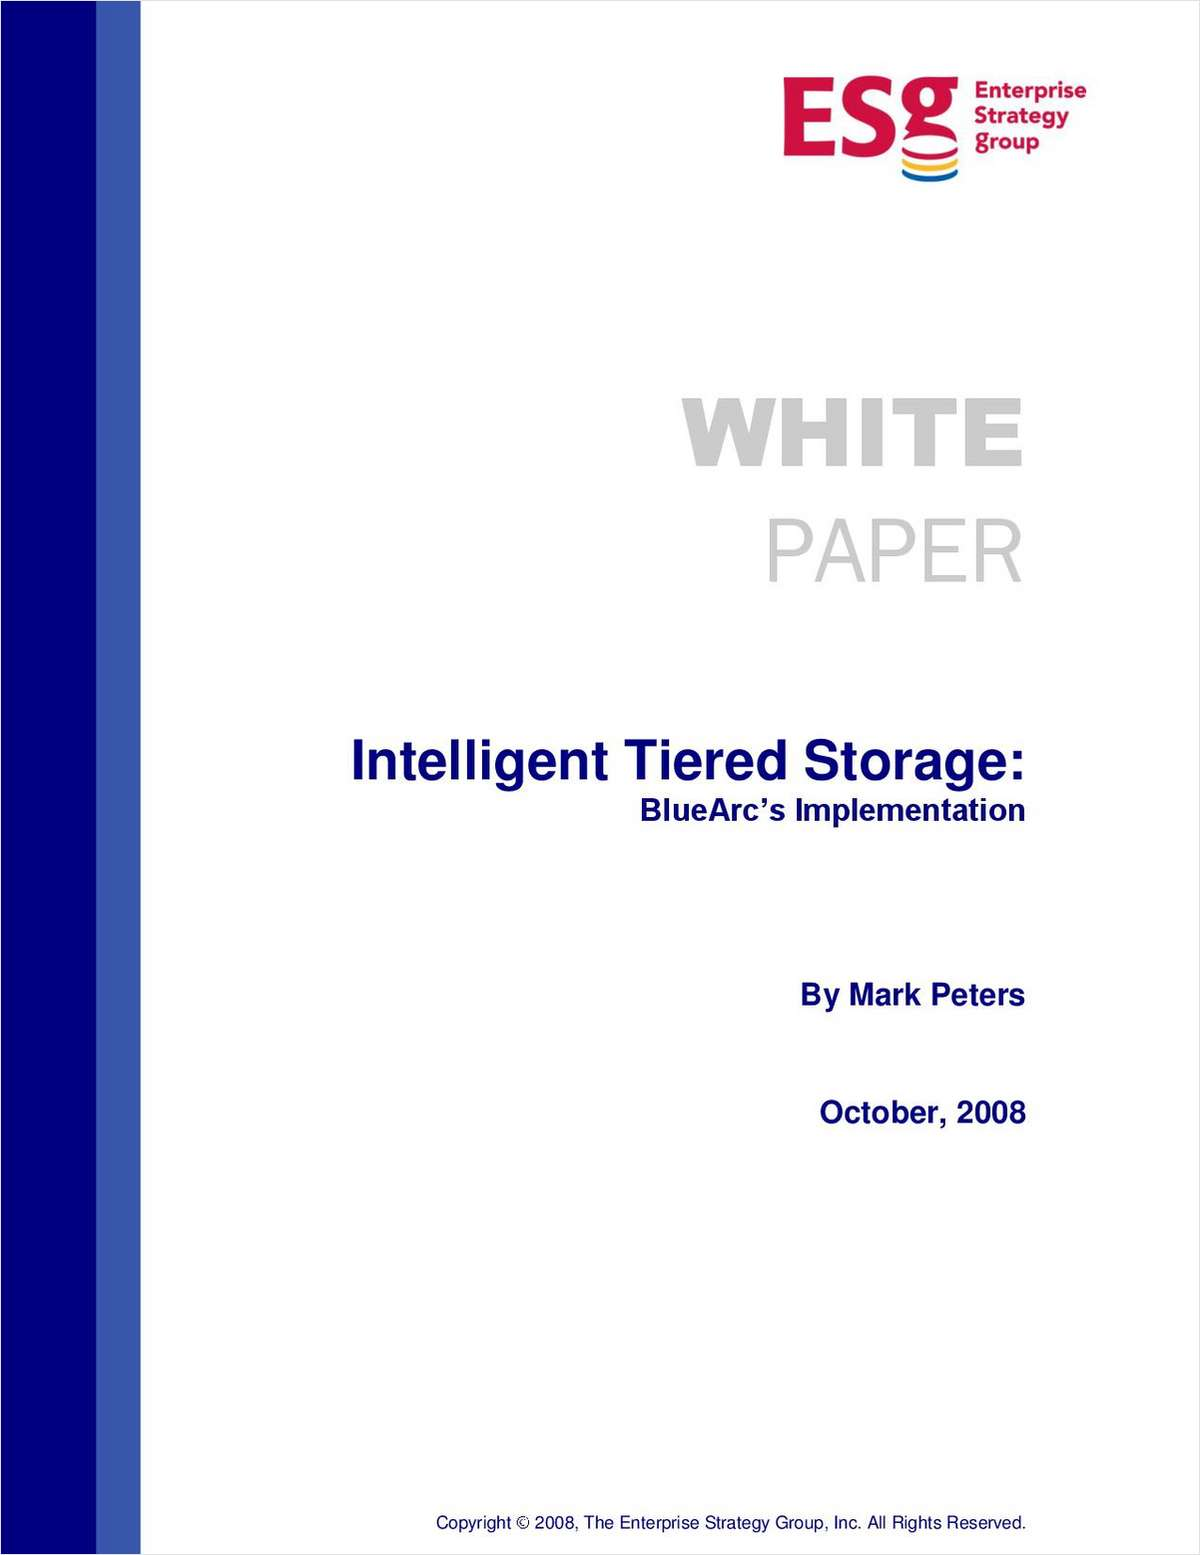 Intelligent Tiered Storage: BlueArc's Implementation